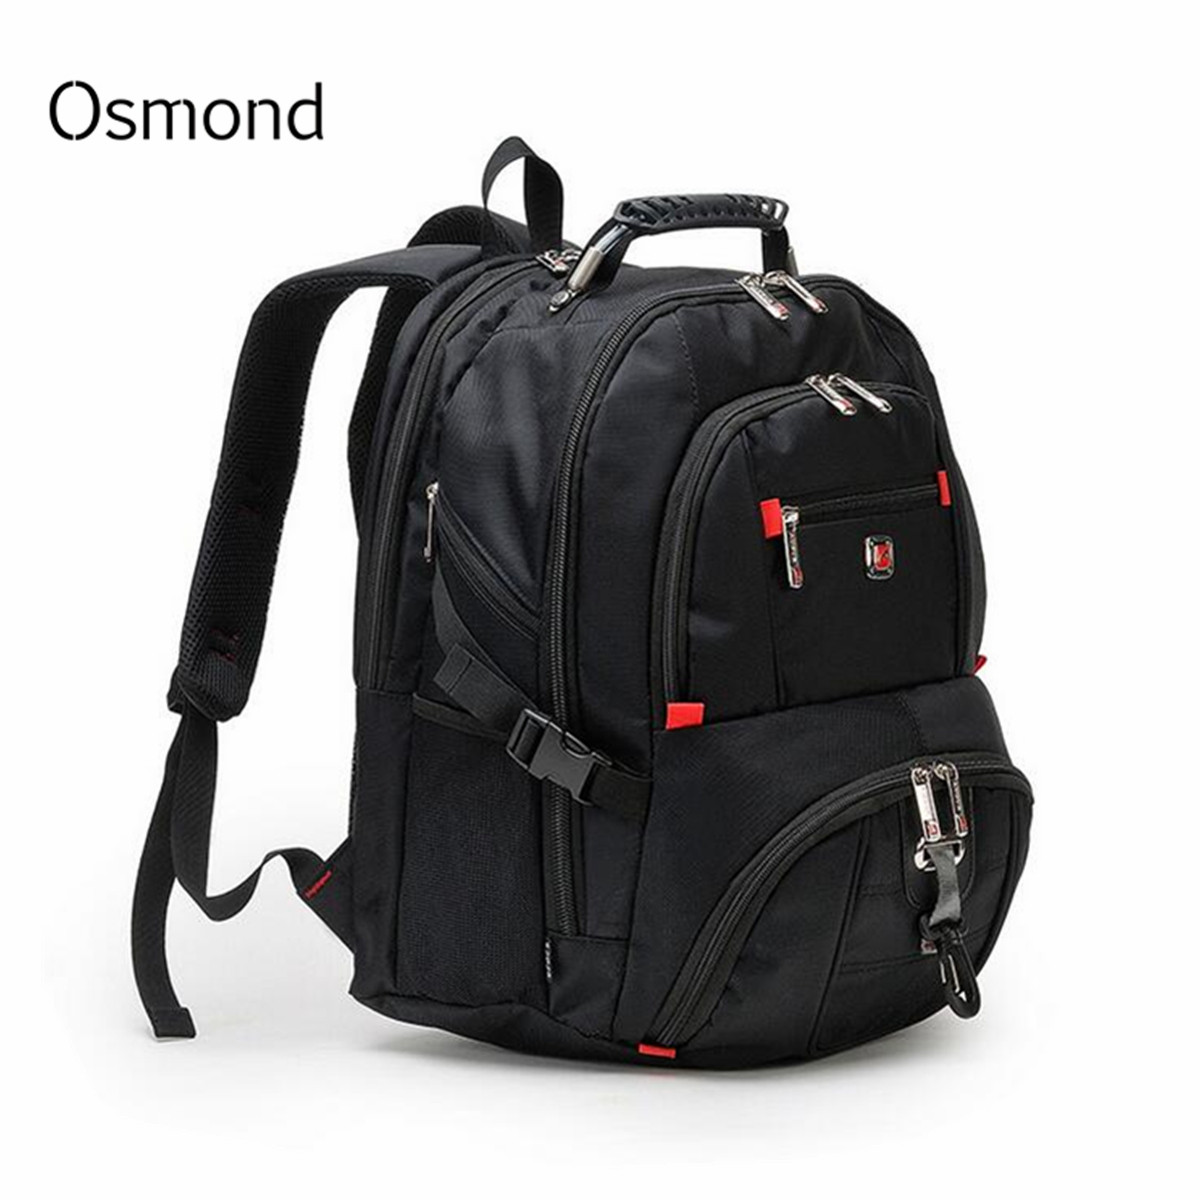 Laptop Backpacks Luggage Men/'s Travel Bags Male Large Capacity Bag school bag